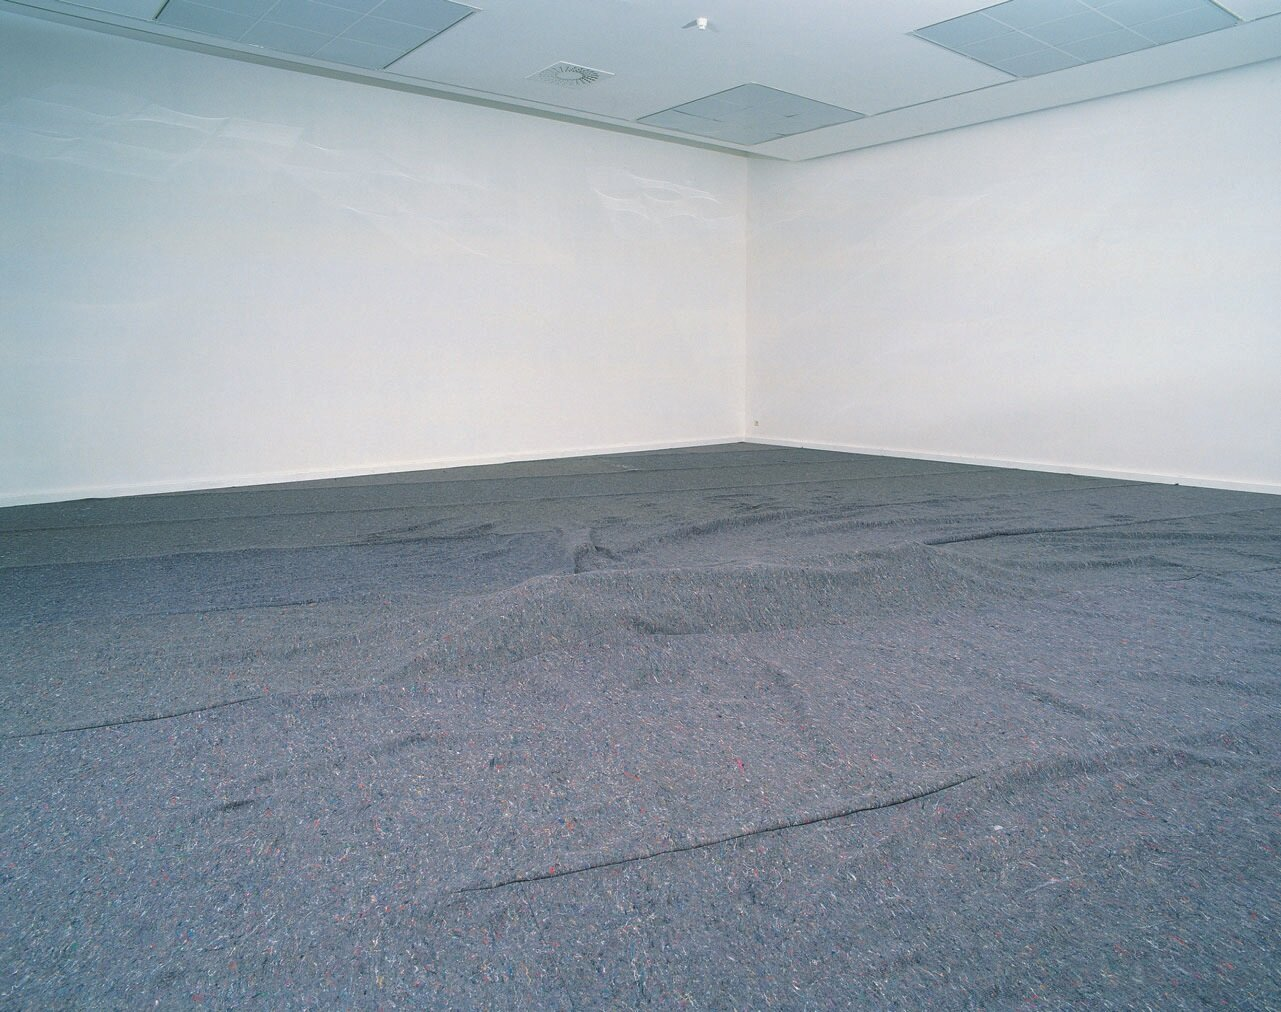 View-of-installation-Museum-van-Hedendaagse-Kunst-Antwerp-1998-Photo-by-Dir.jpg